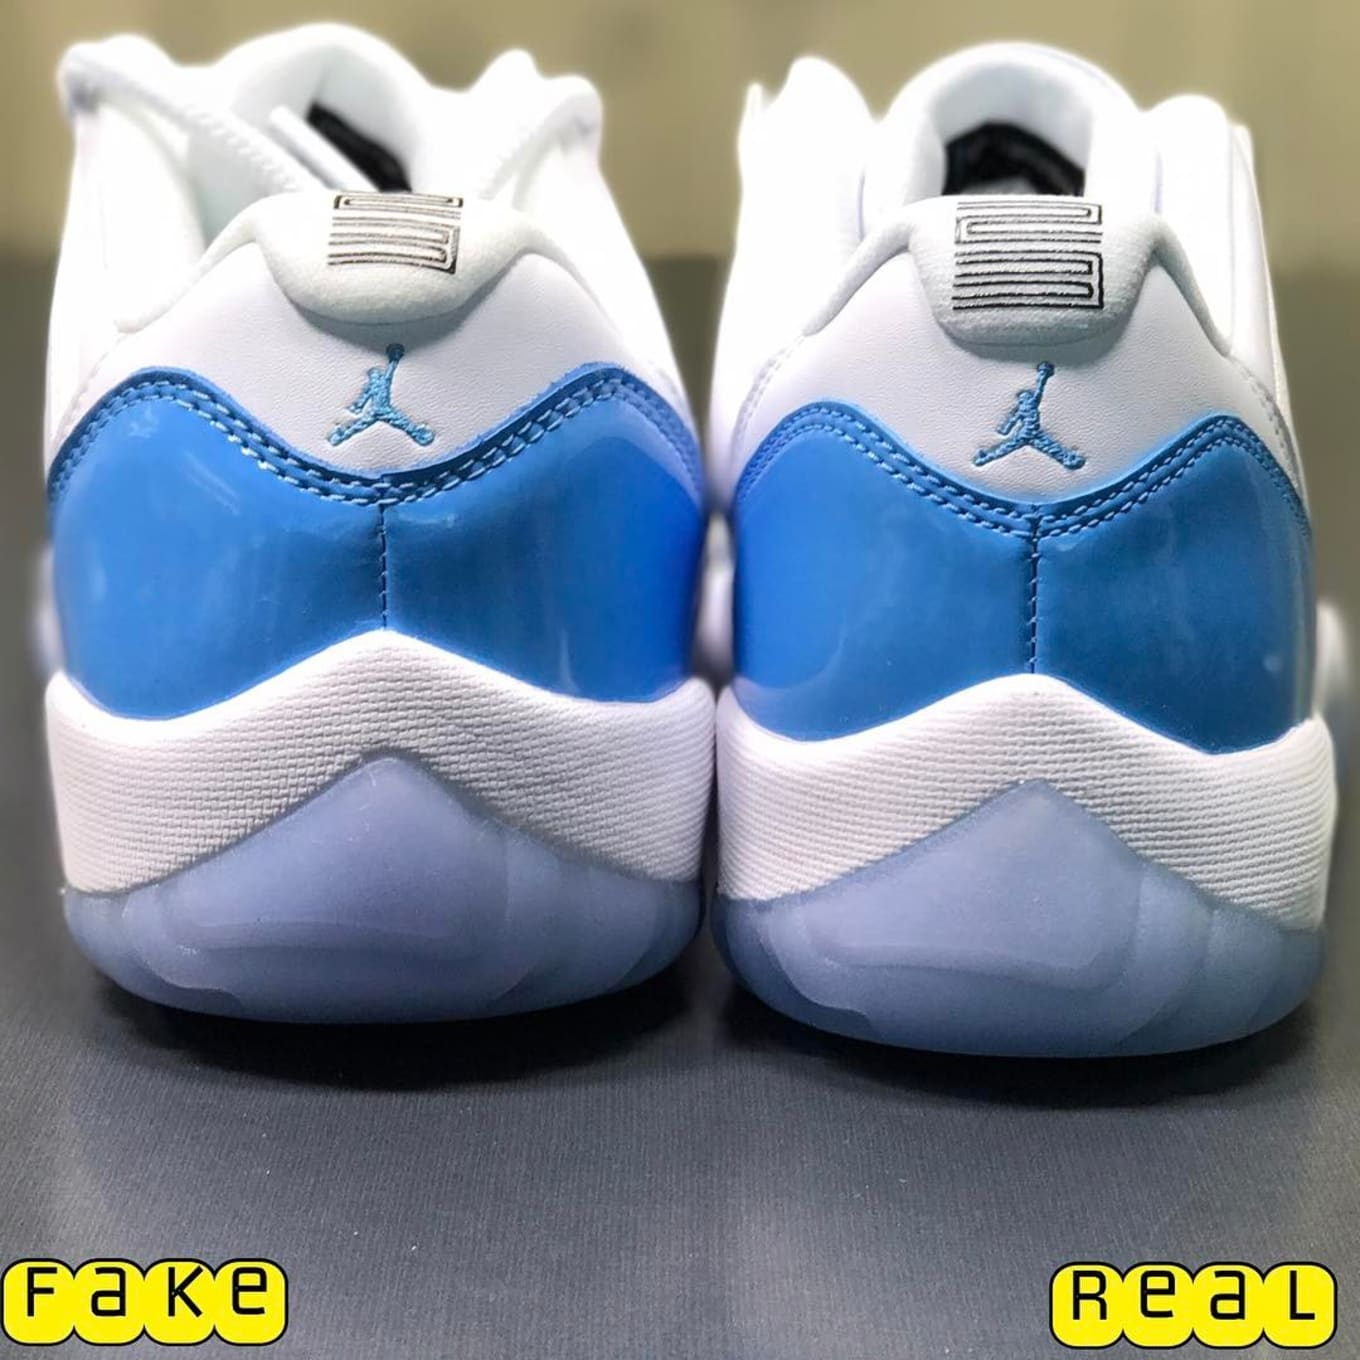 buy online 76af4 d48fd Air Jordan 11 Low UNC Real Fake Legit Check | Sole Collector